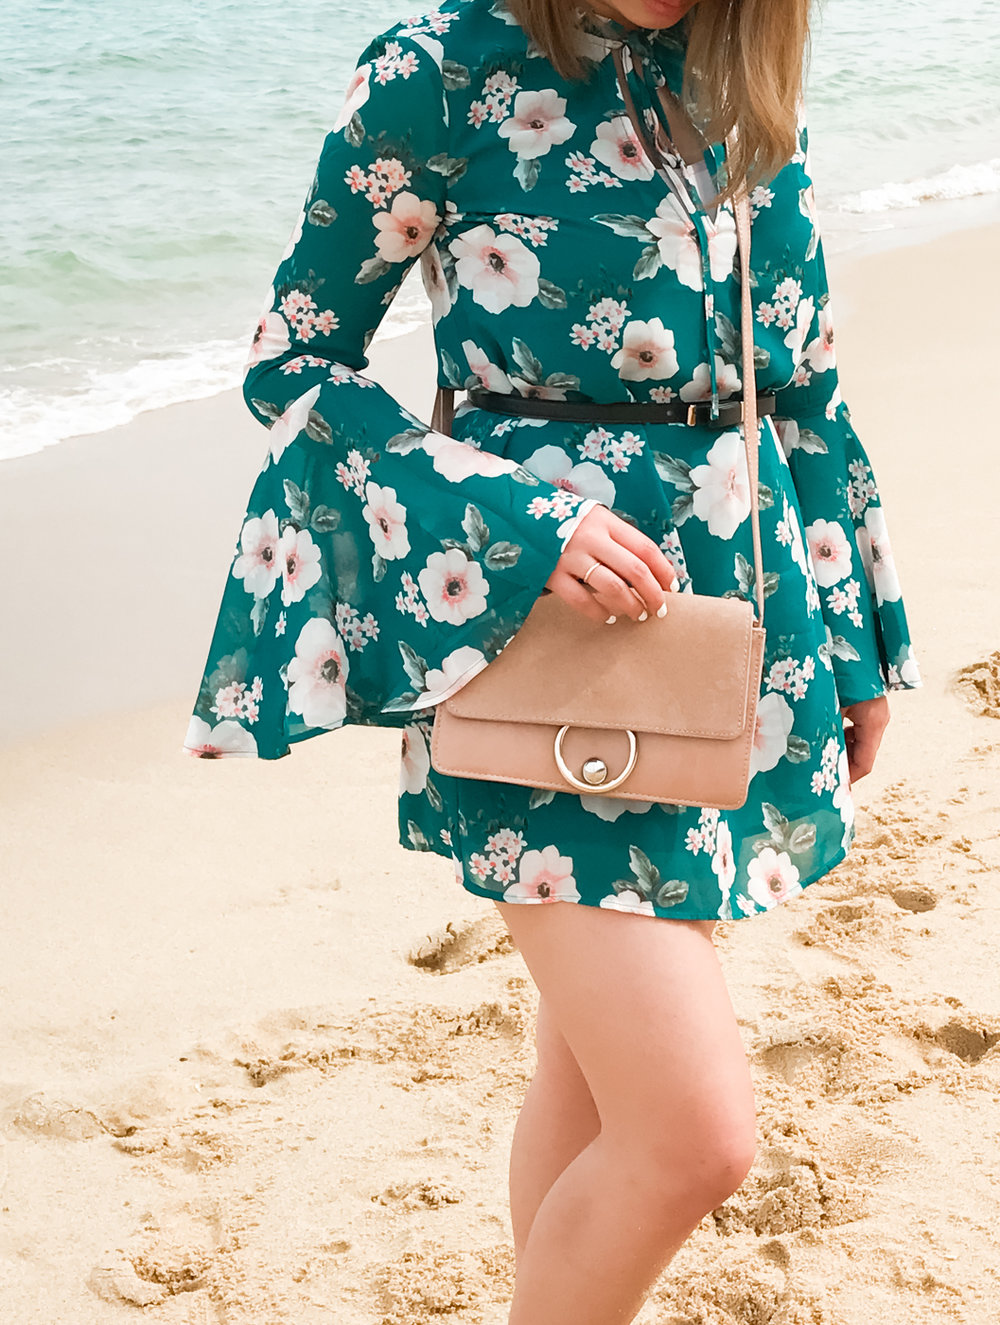 Forever 21 Floral Print Bell-Sleeved Dress & Mango Leather Flap Bag | The Chic Diary